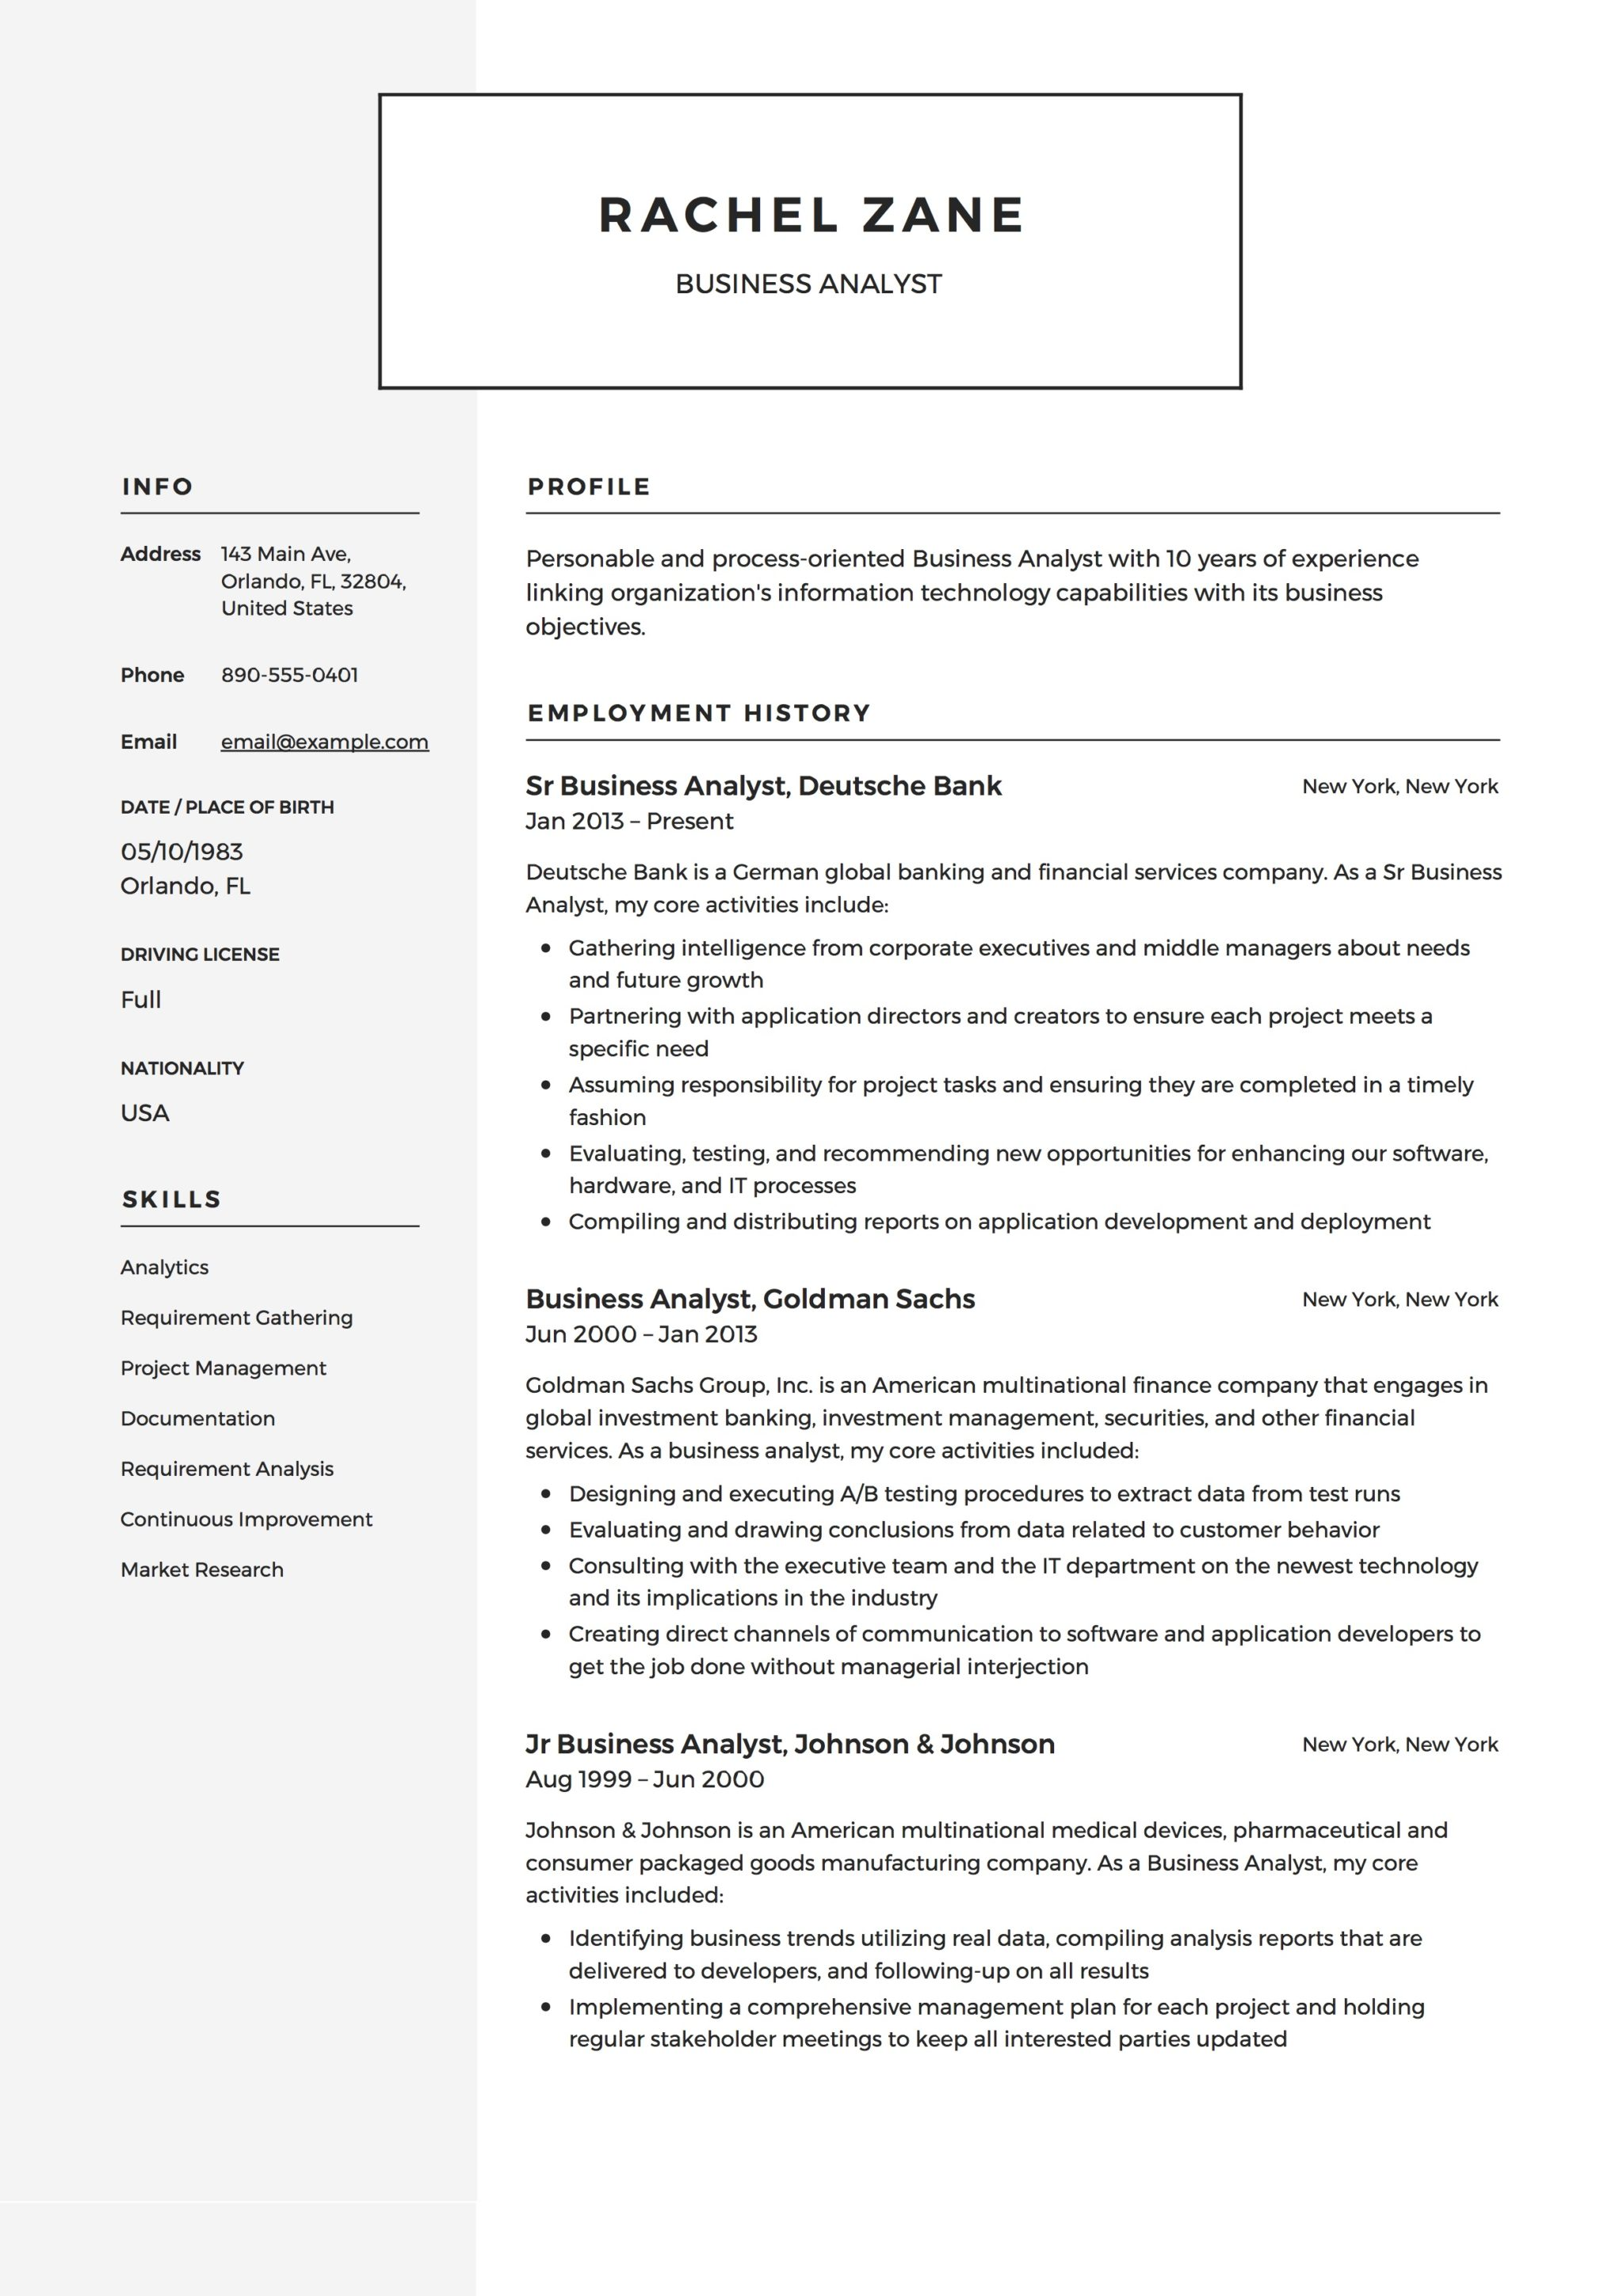 12x Business Analyst Resume Samples | Resumeviking.com